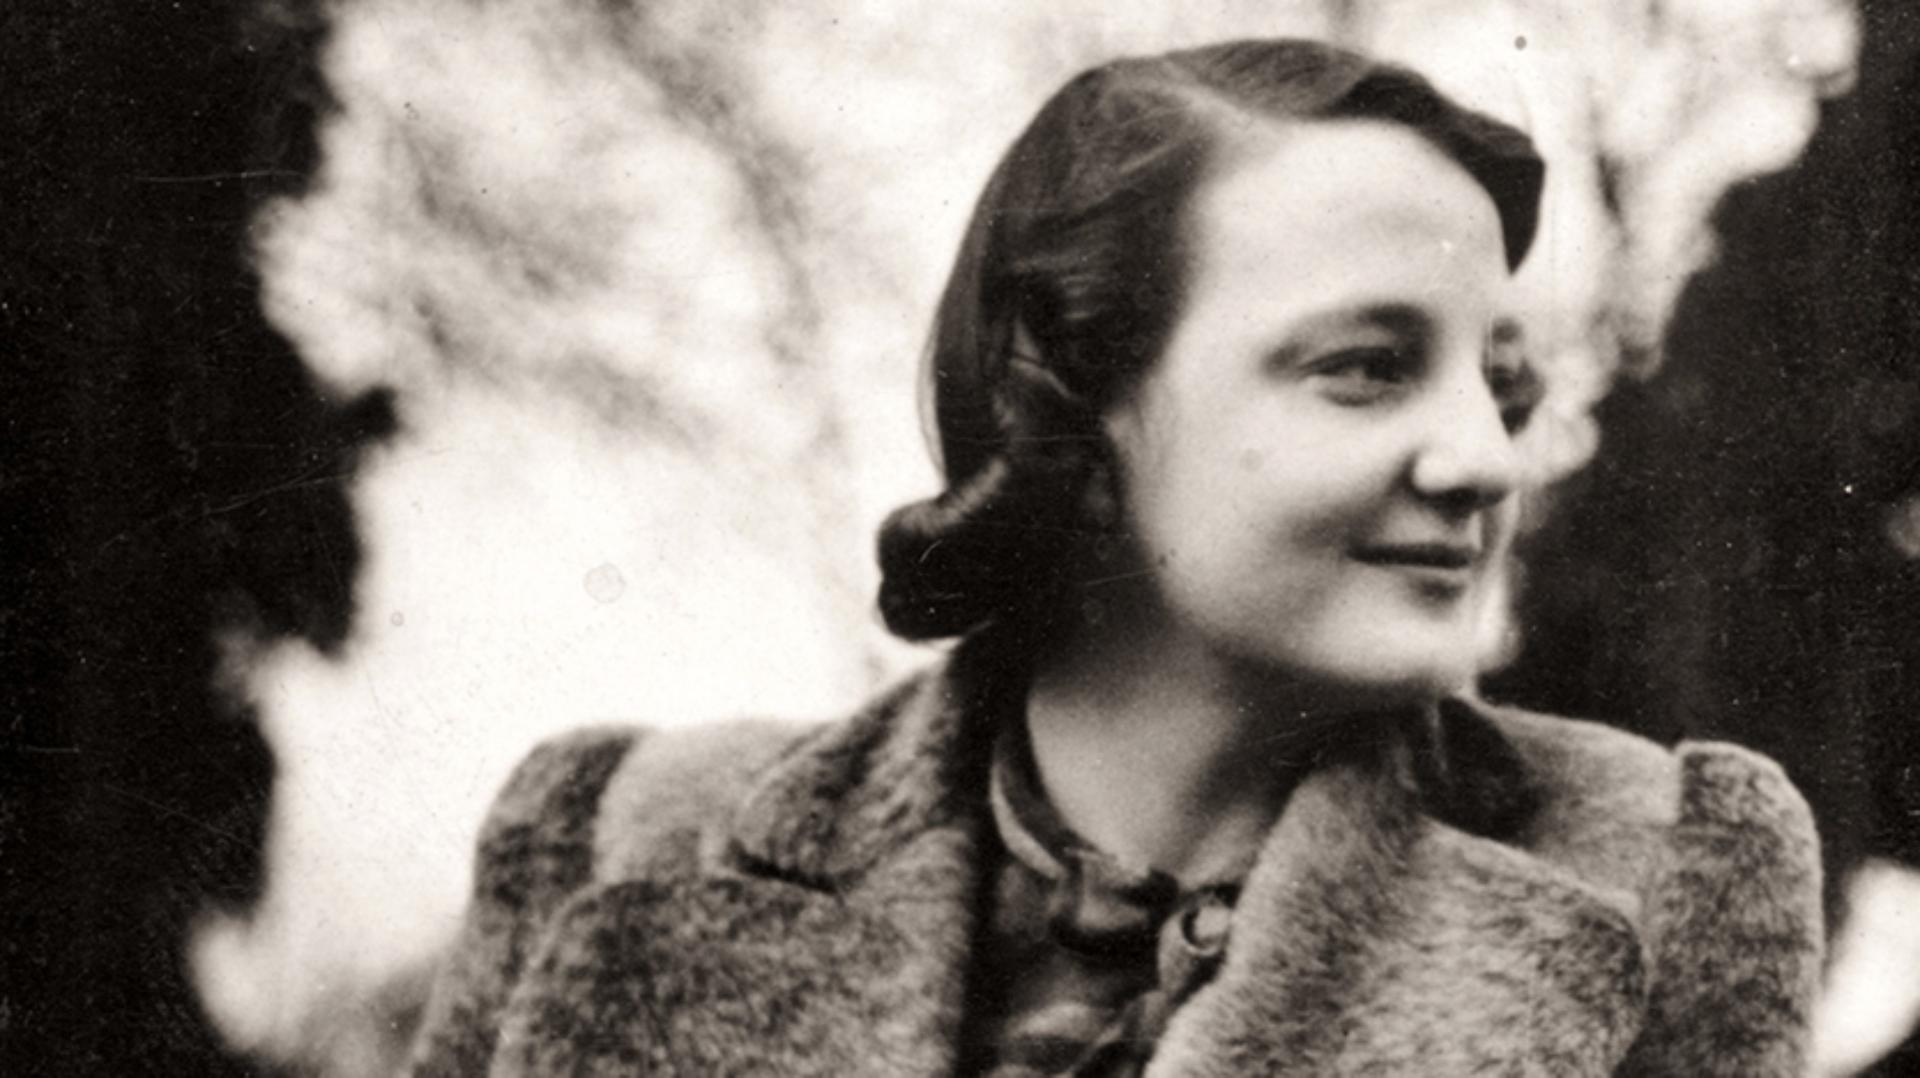 James Dyson's mother, smiling and with a 1940's hairstyle